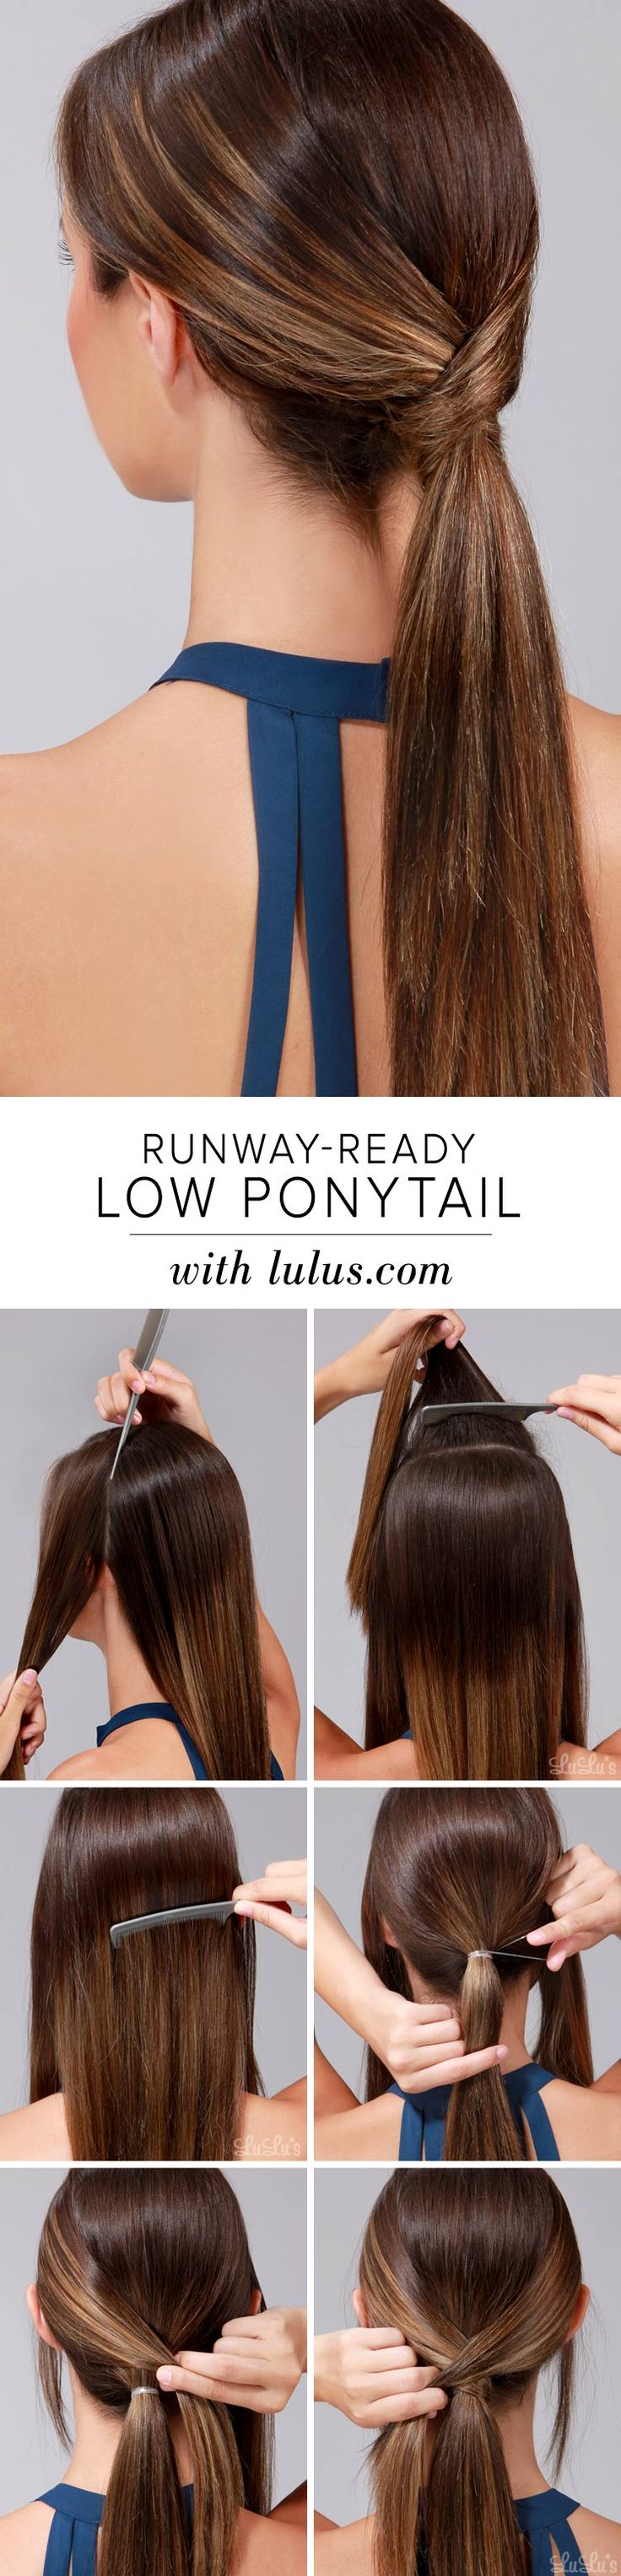 Amazing 1000 Ideas About Cute Easy Ponytails On Pinterest Quick Short Hairstyles For Black Women Fulllsitofus